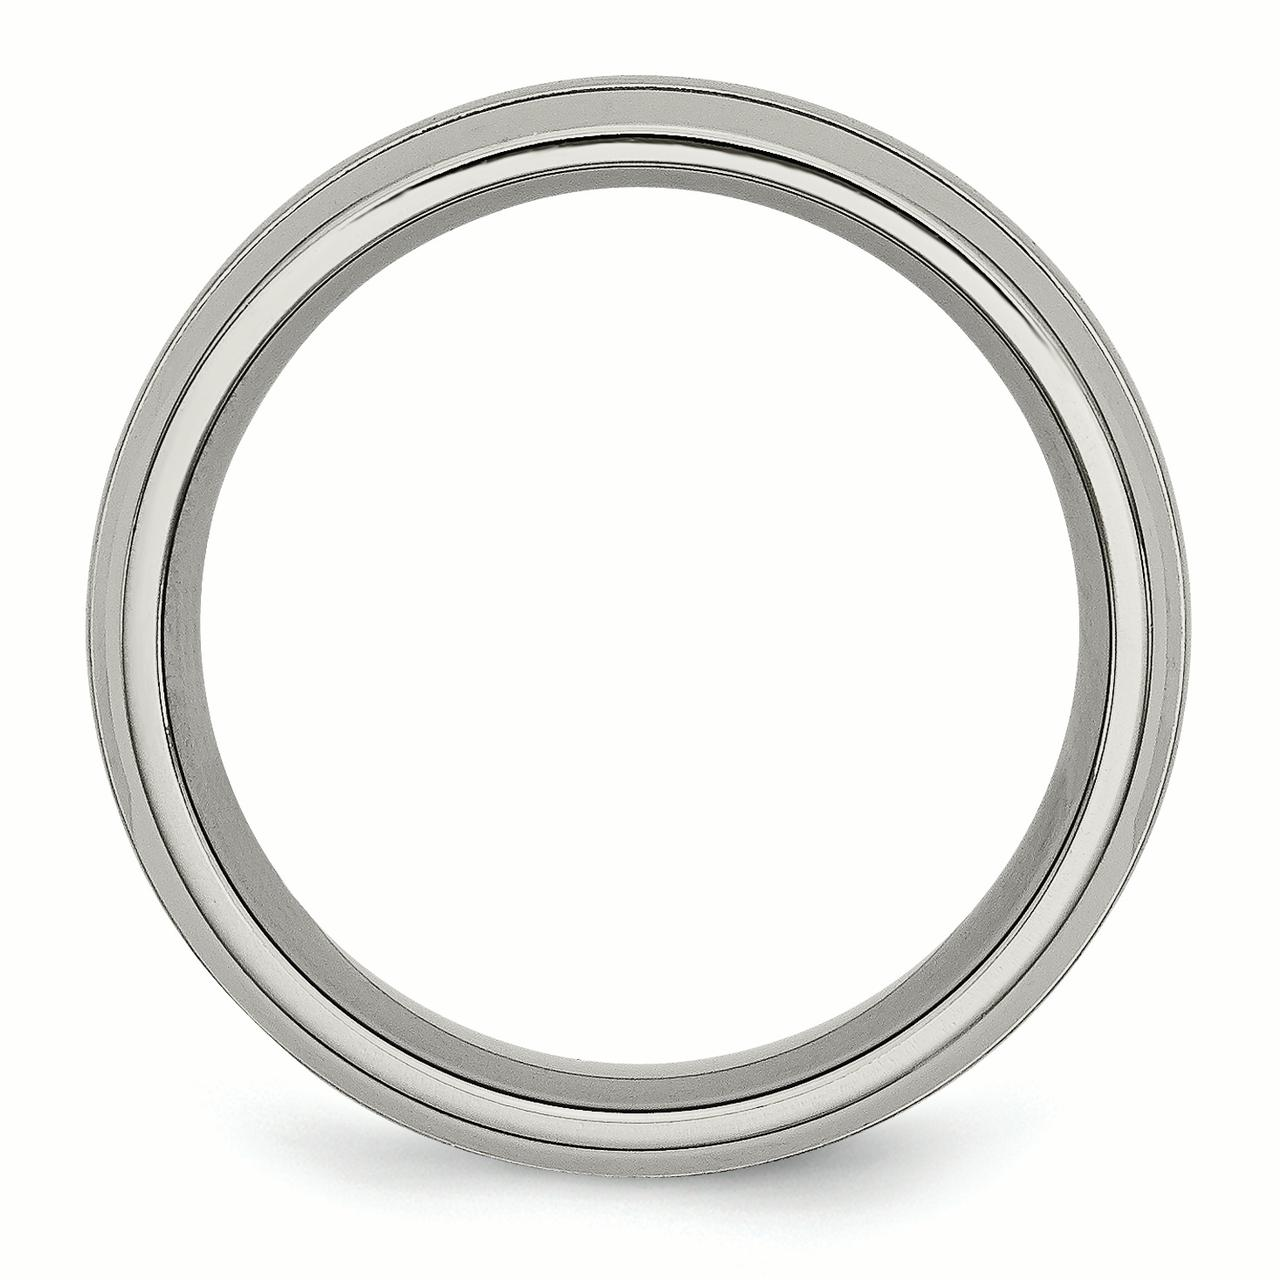 Titanium Grooved 8mm Brushed Wedding Ring Band Size 14.50 Fashion Jewelry Gifts For Women For Her - image 2 de 6